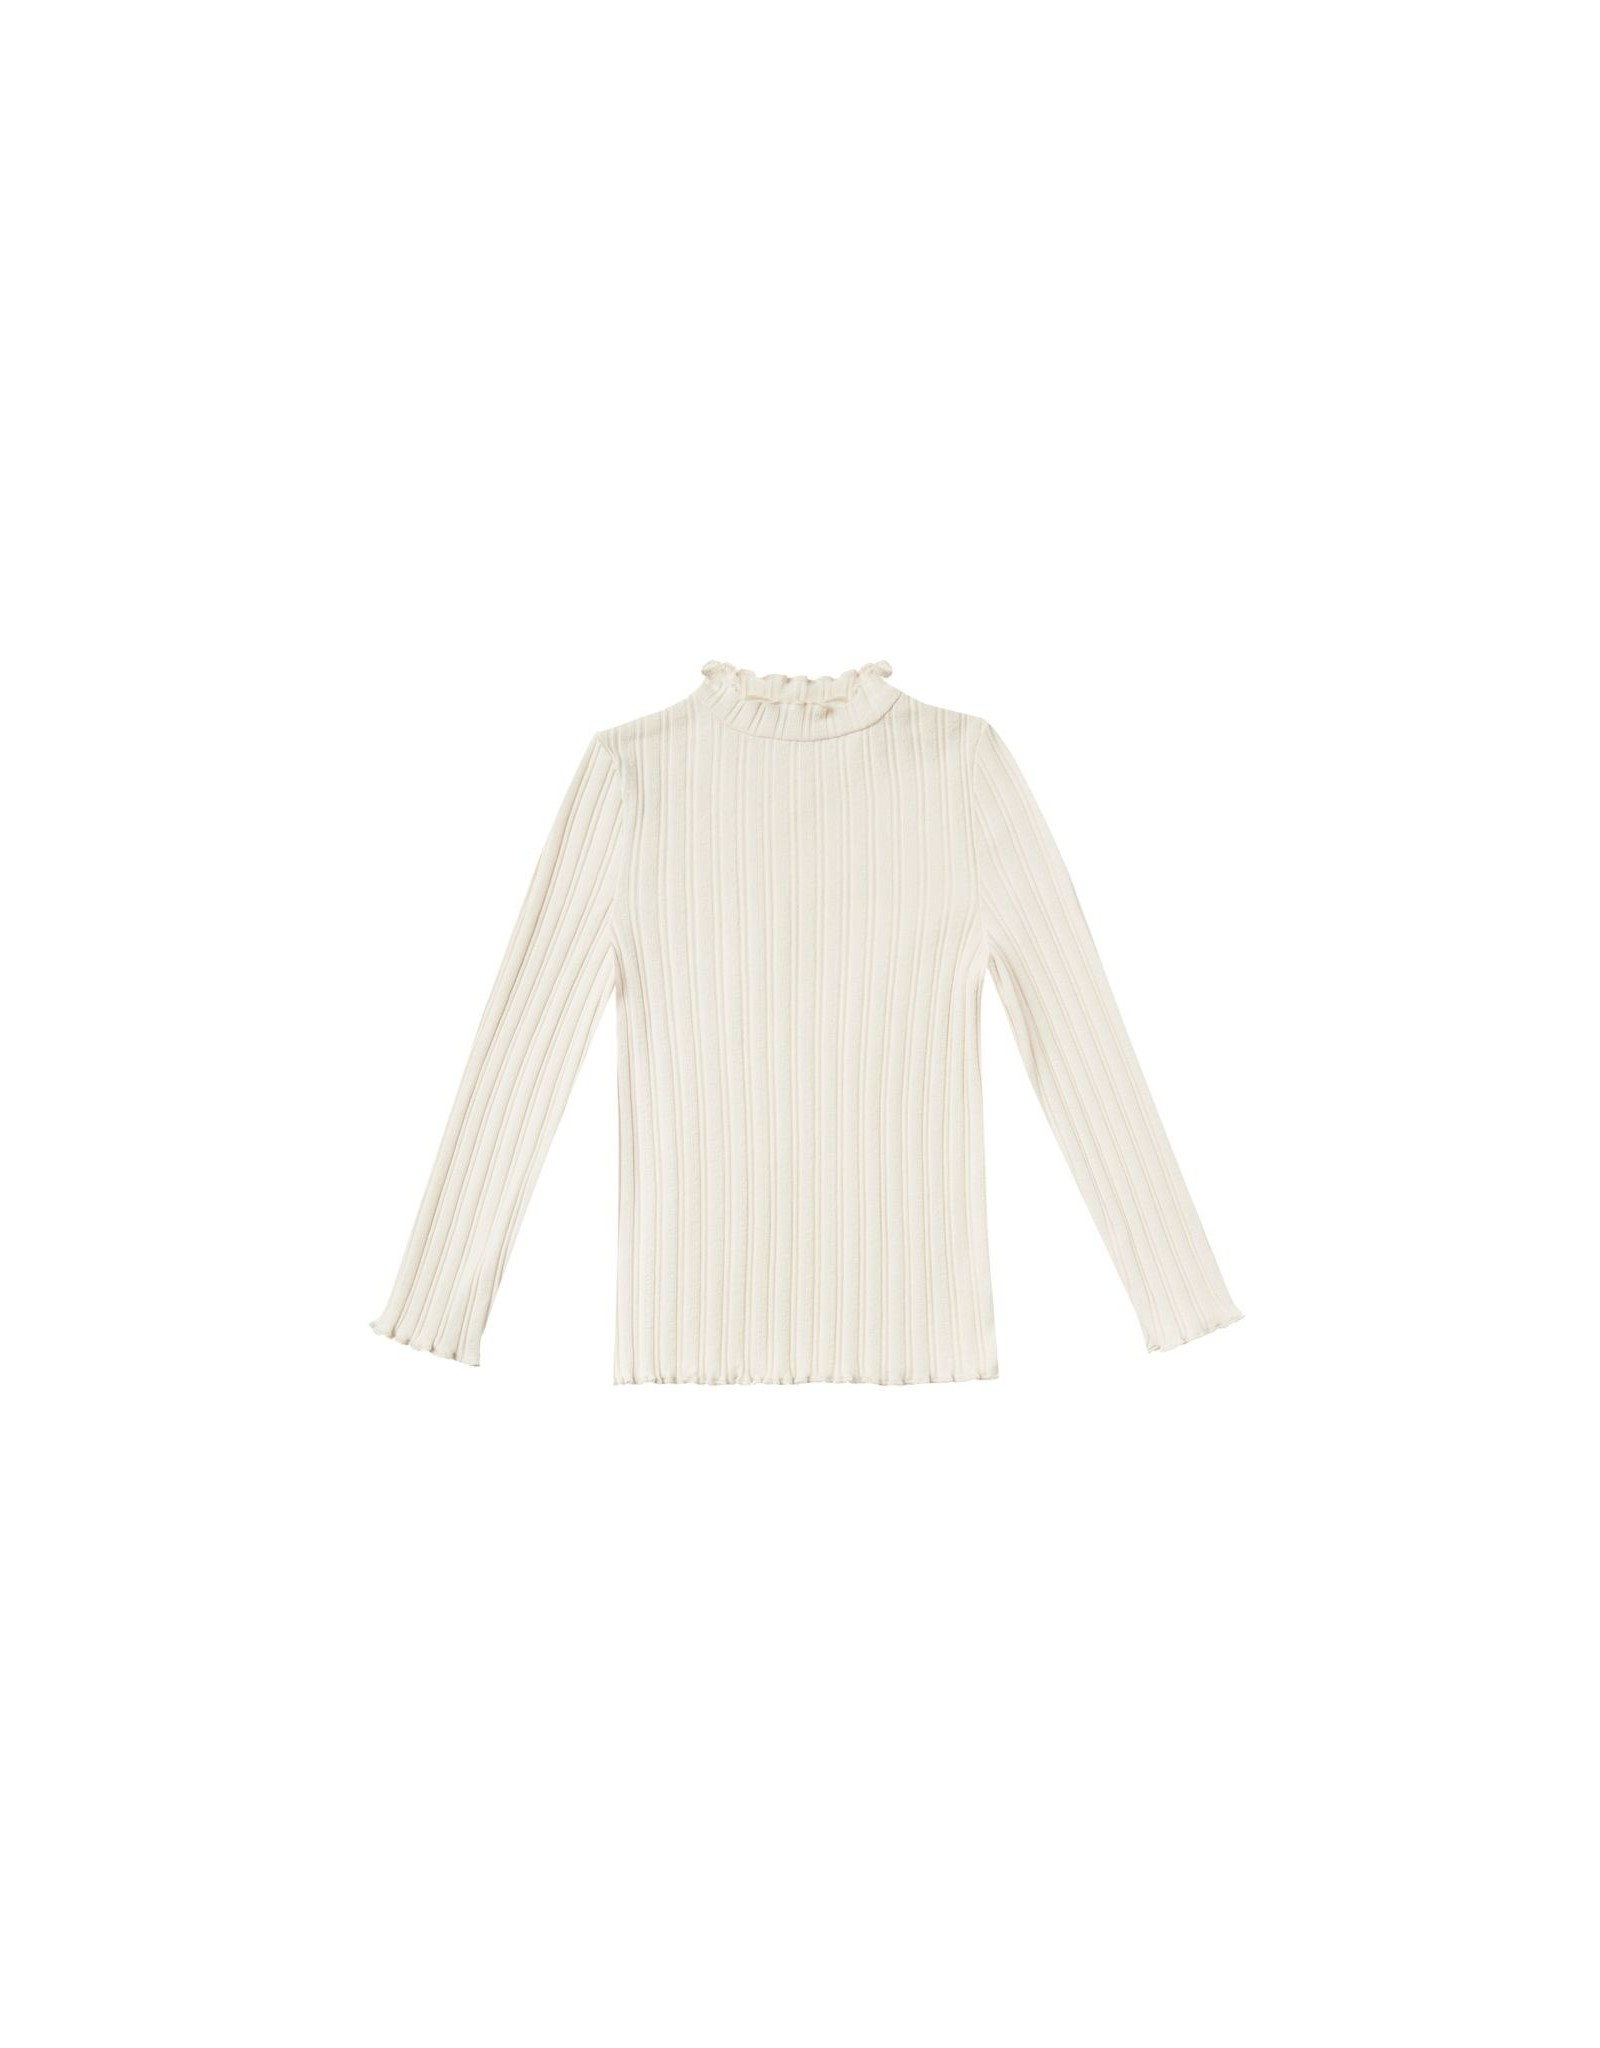 Rylee and Cru ribbed l/s tee- natural